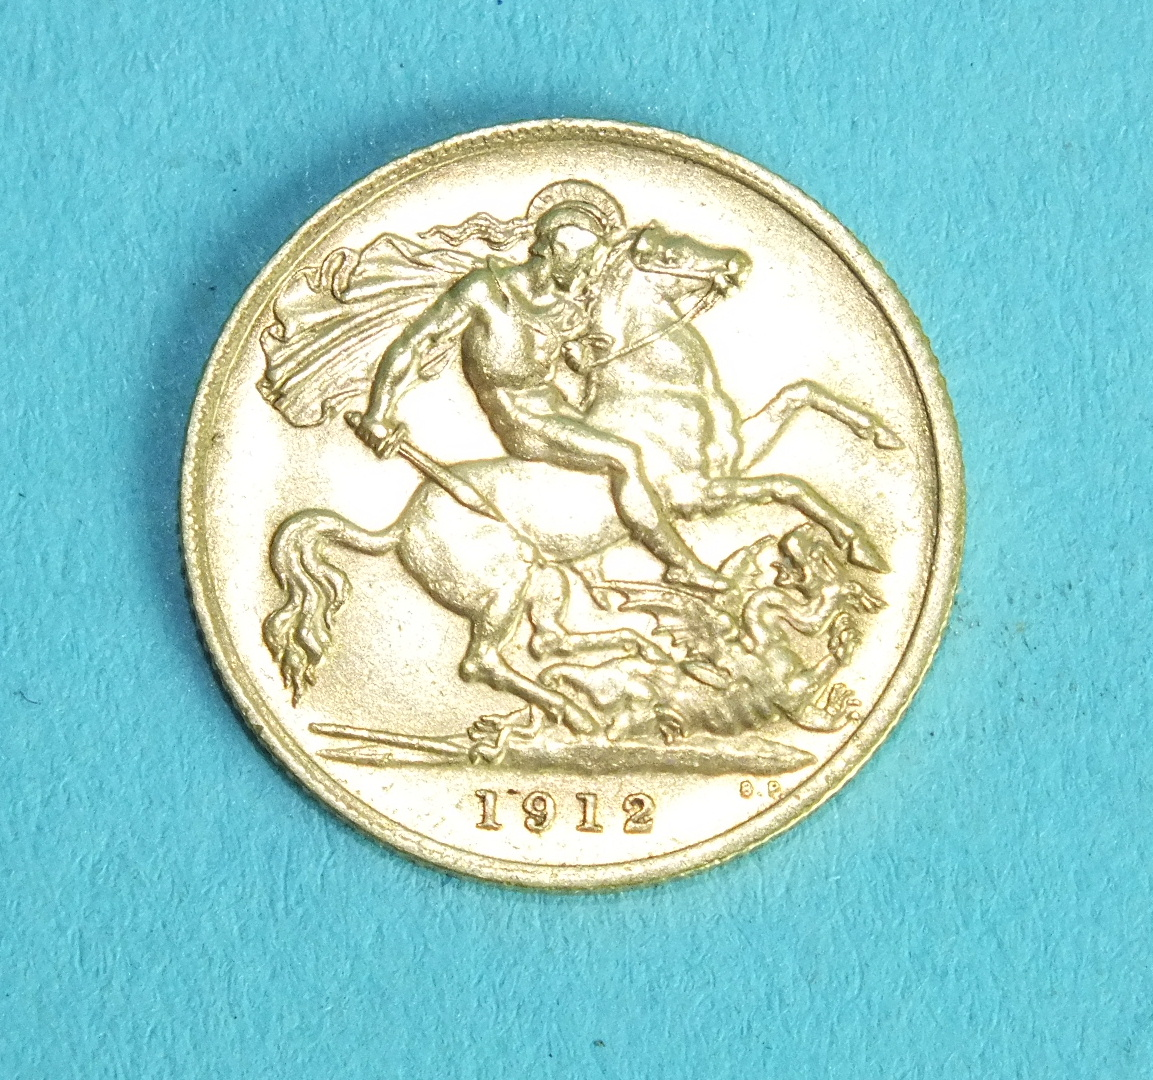 Lot 361 - A George V 1912 half-sovereign.